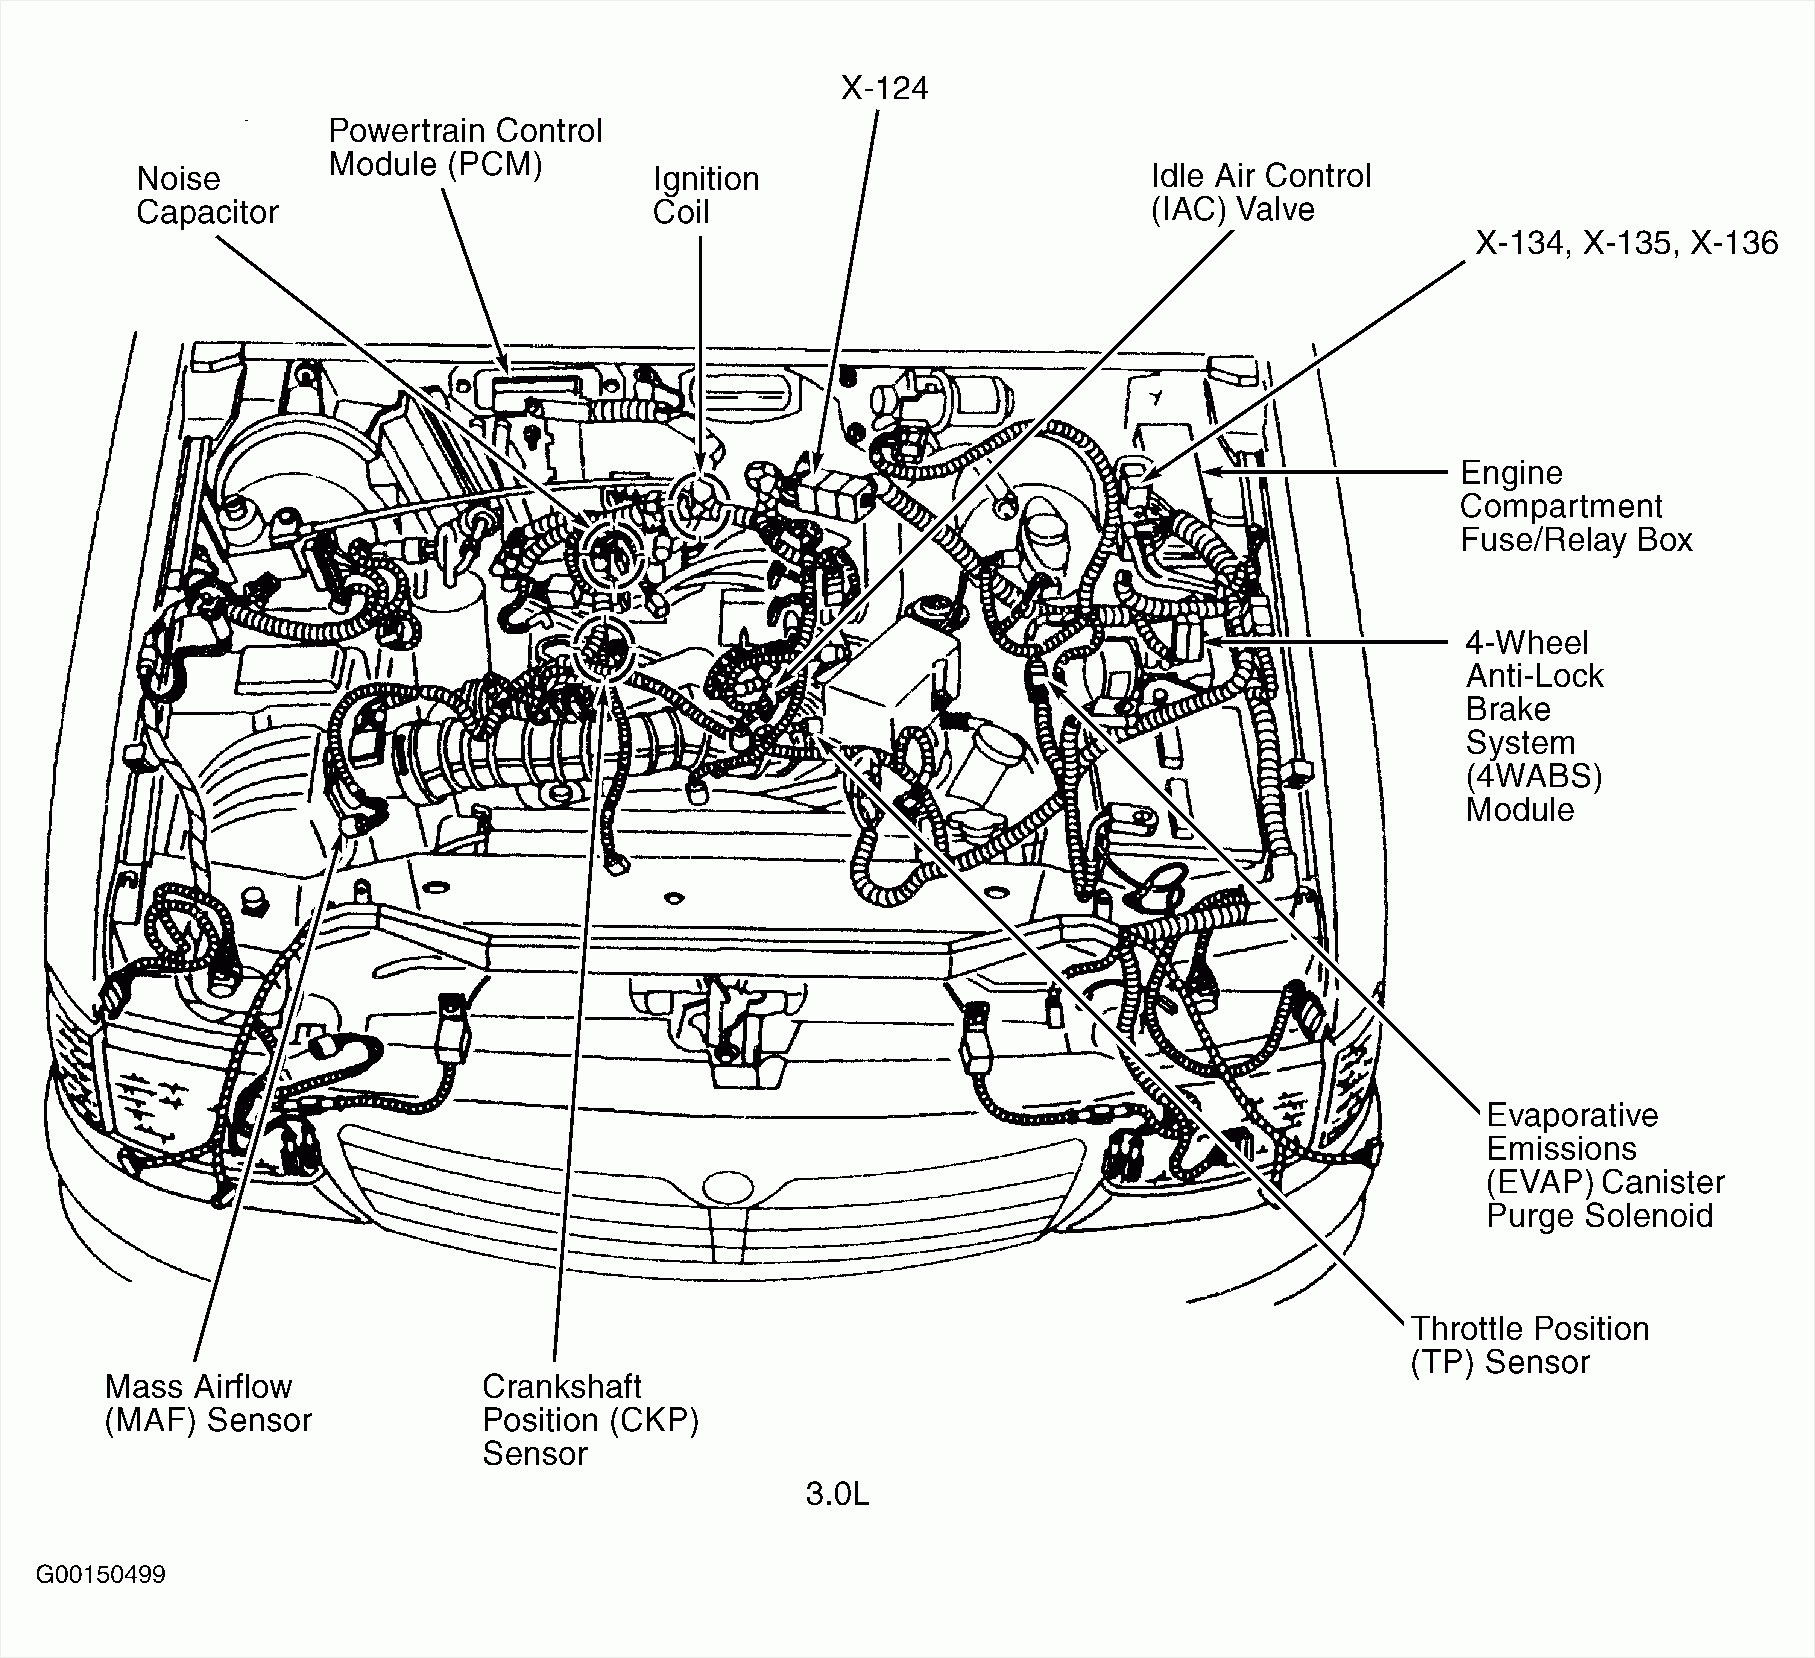 2003 ford taurus engine diagram do you want to download 1991 Ford Festiva Engine Diagram